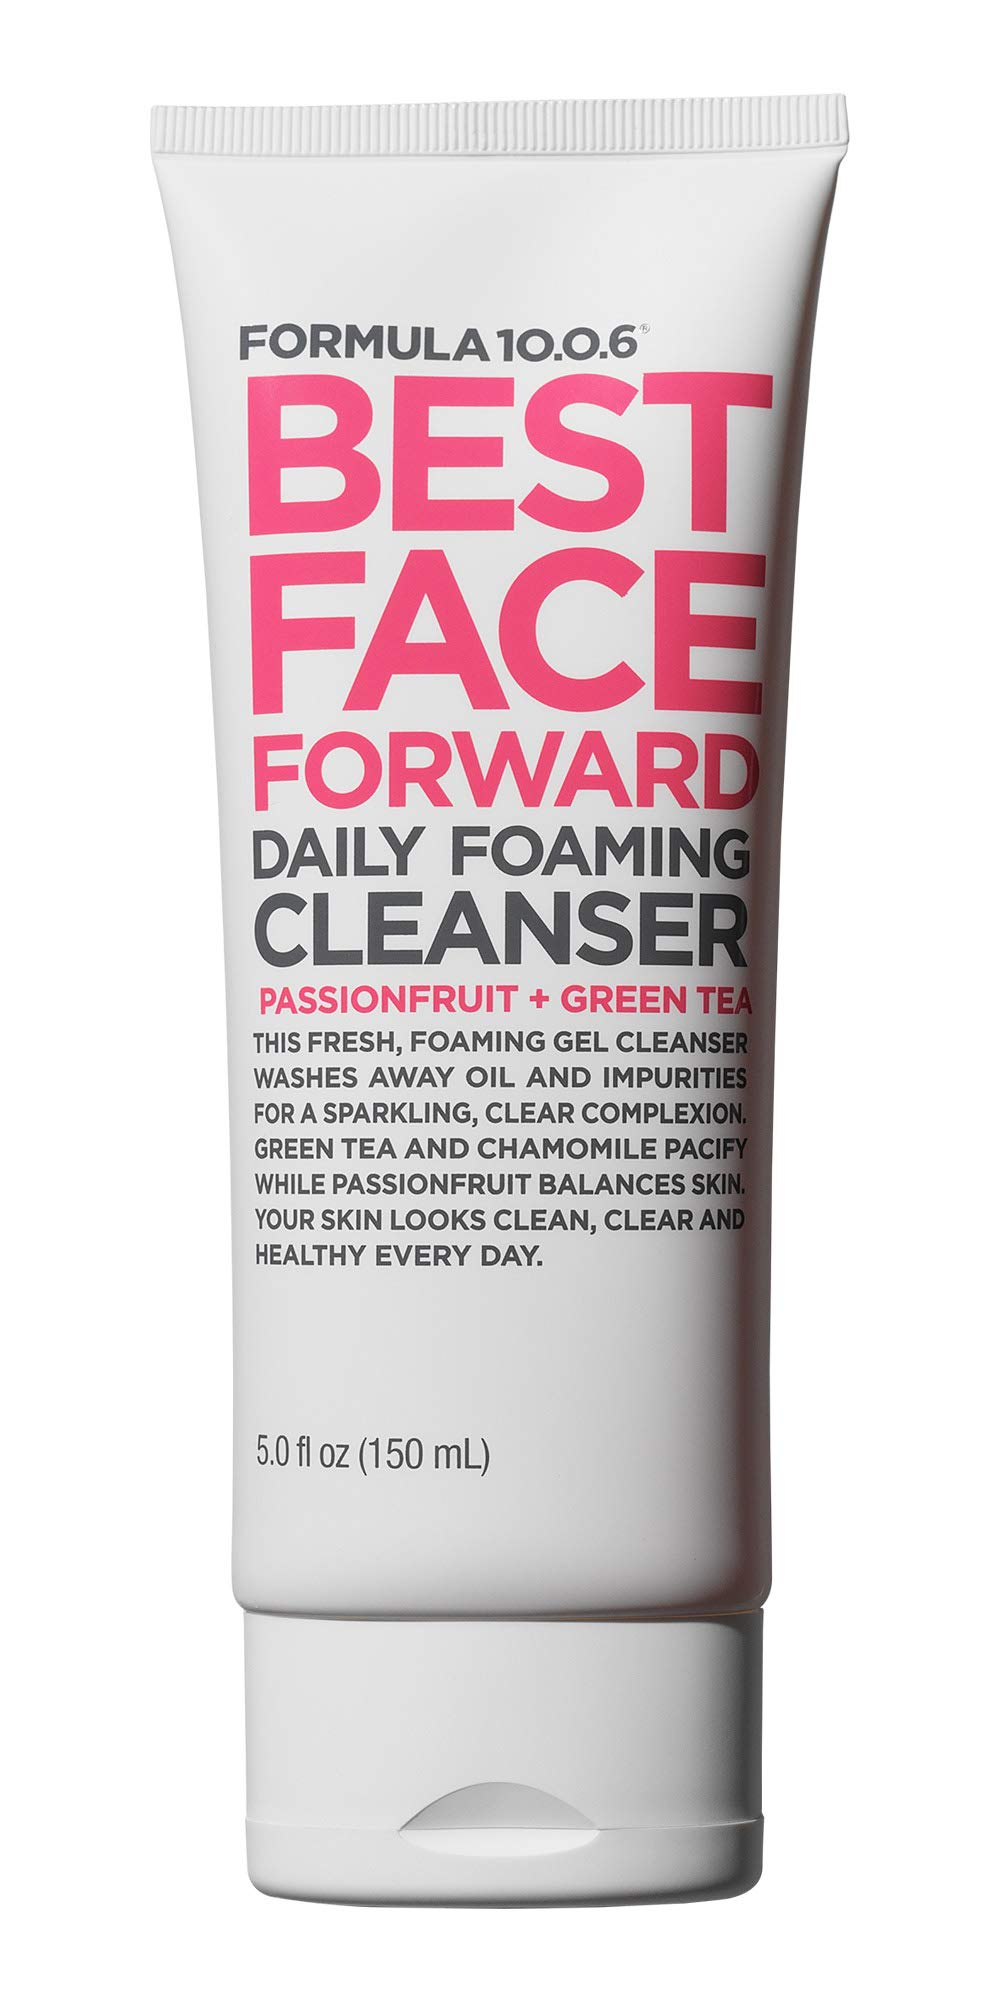 Formula 10.0.6 Best Face Forward (5 fl. Oz.) Daily Foaming Gel Cleanser that Washes Away Oil & Impurities - Vegan, Paraben-Free, Cruelty-Free